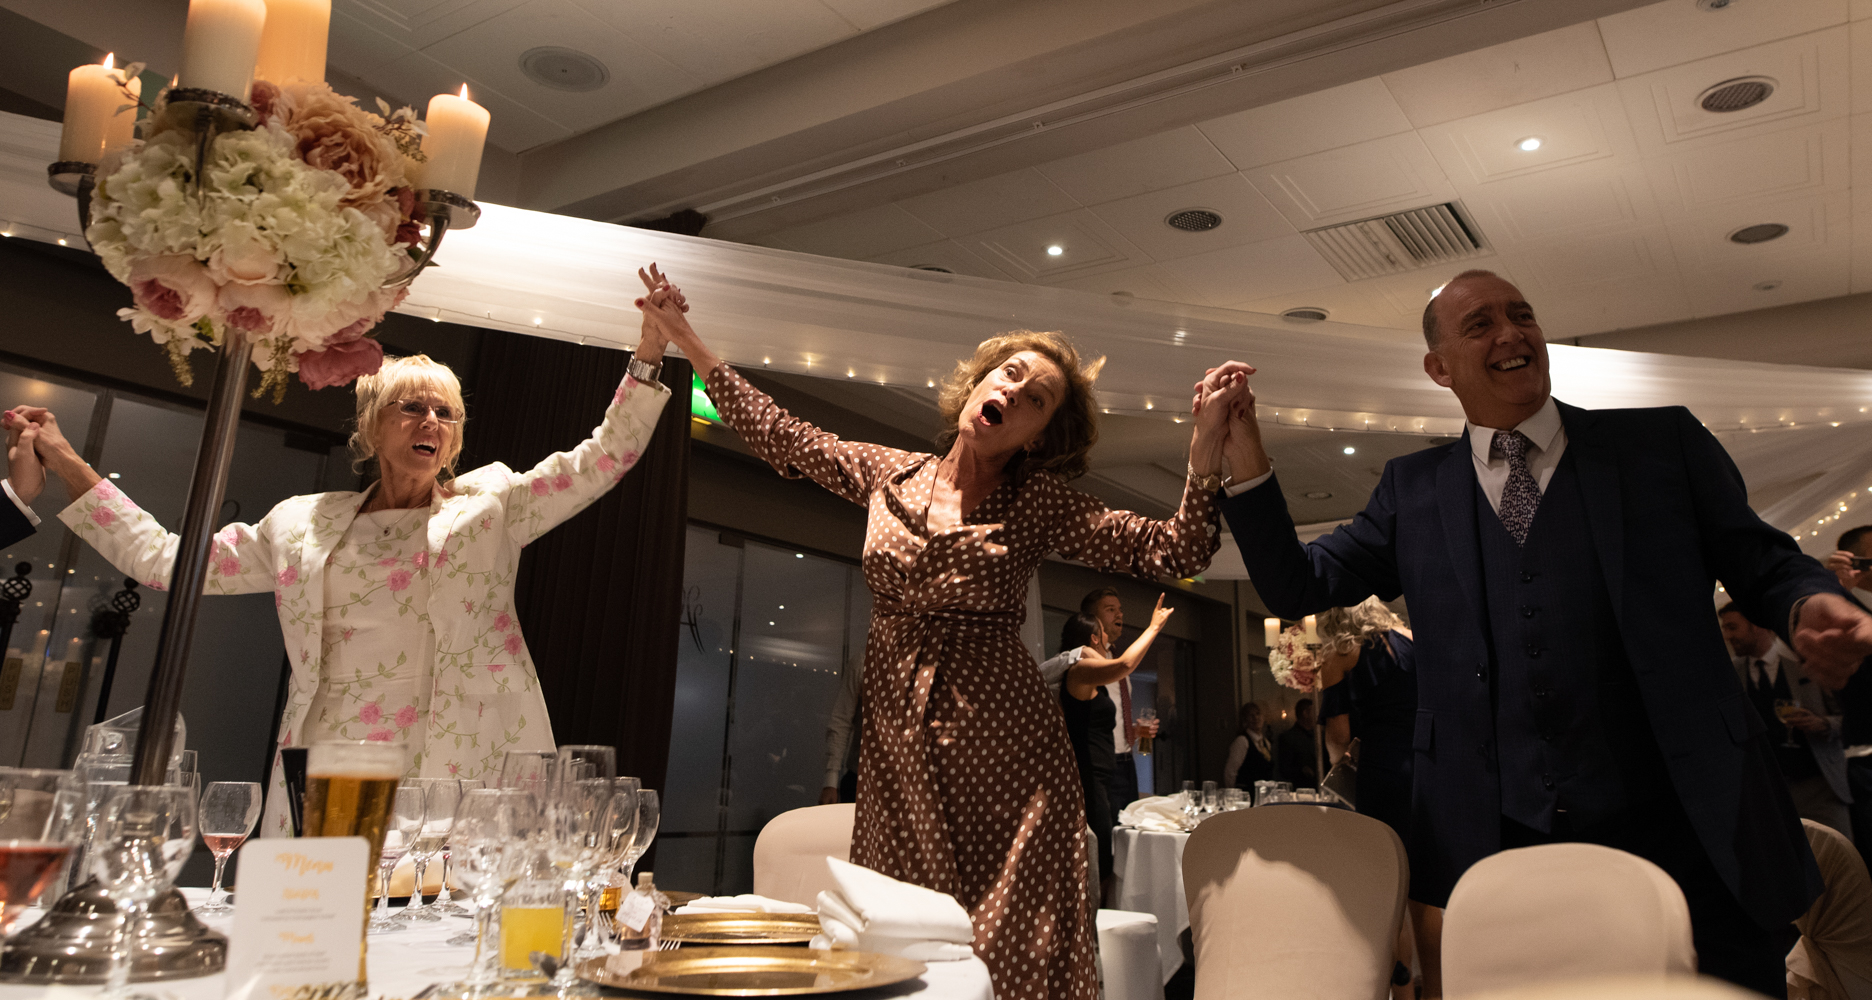 Some of the guests dancing and singing along with the singing waiters